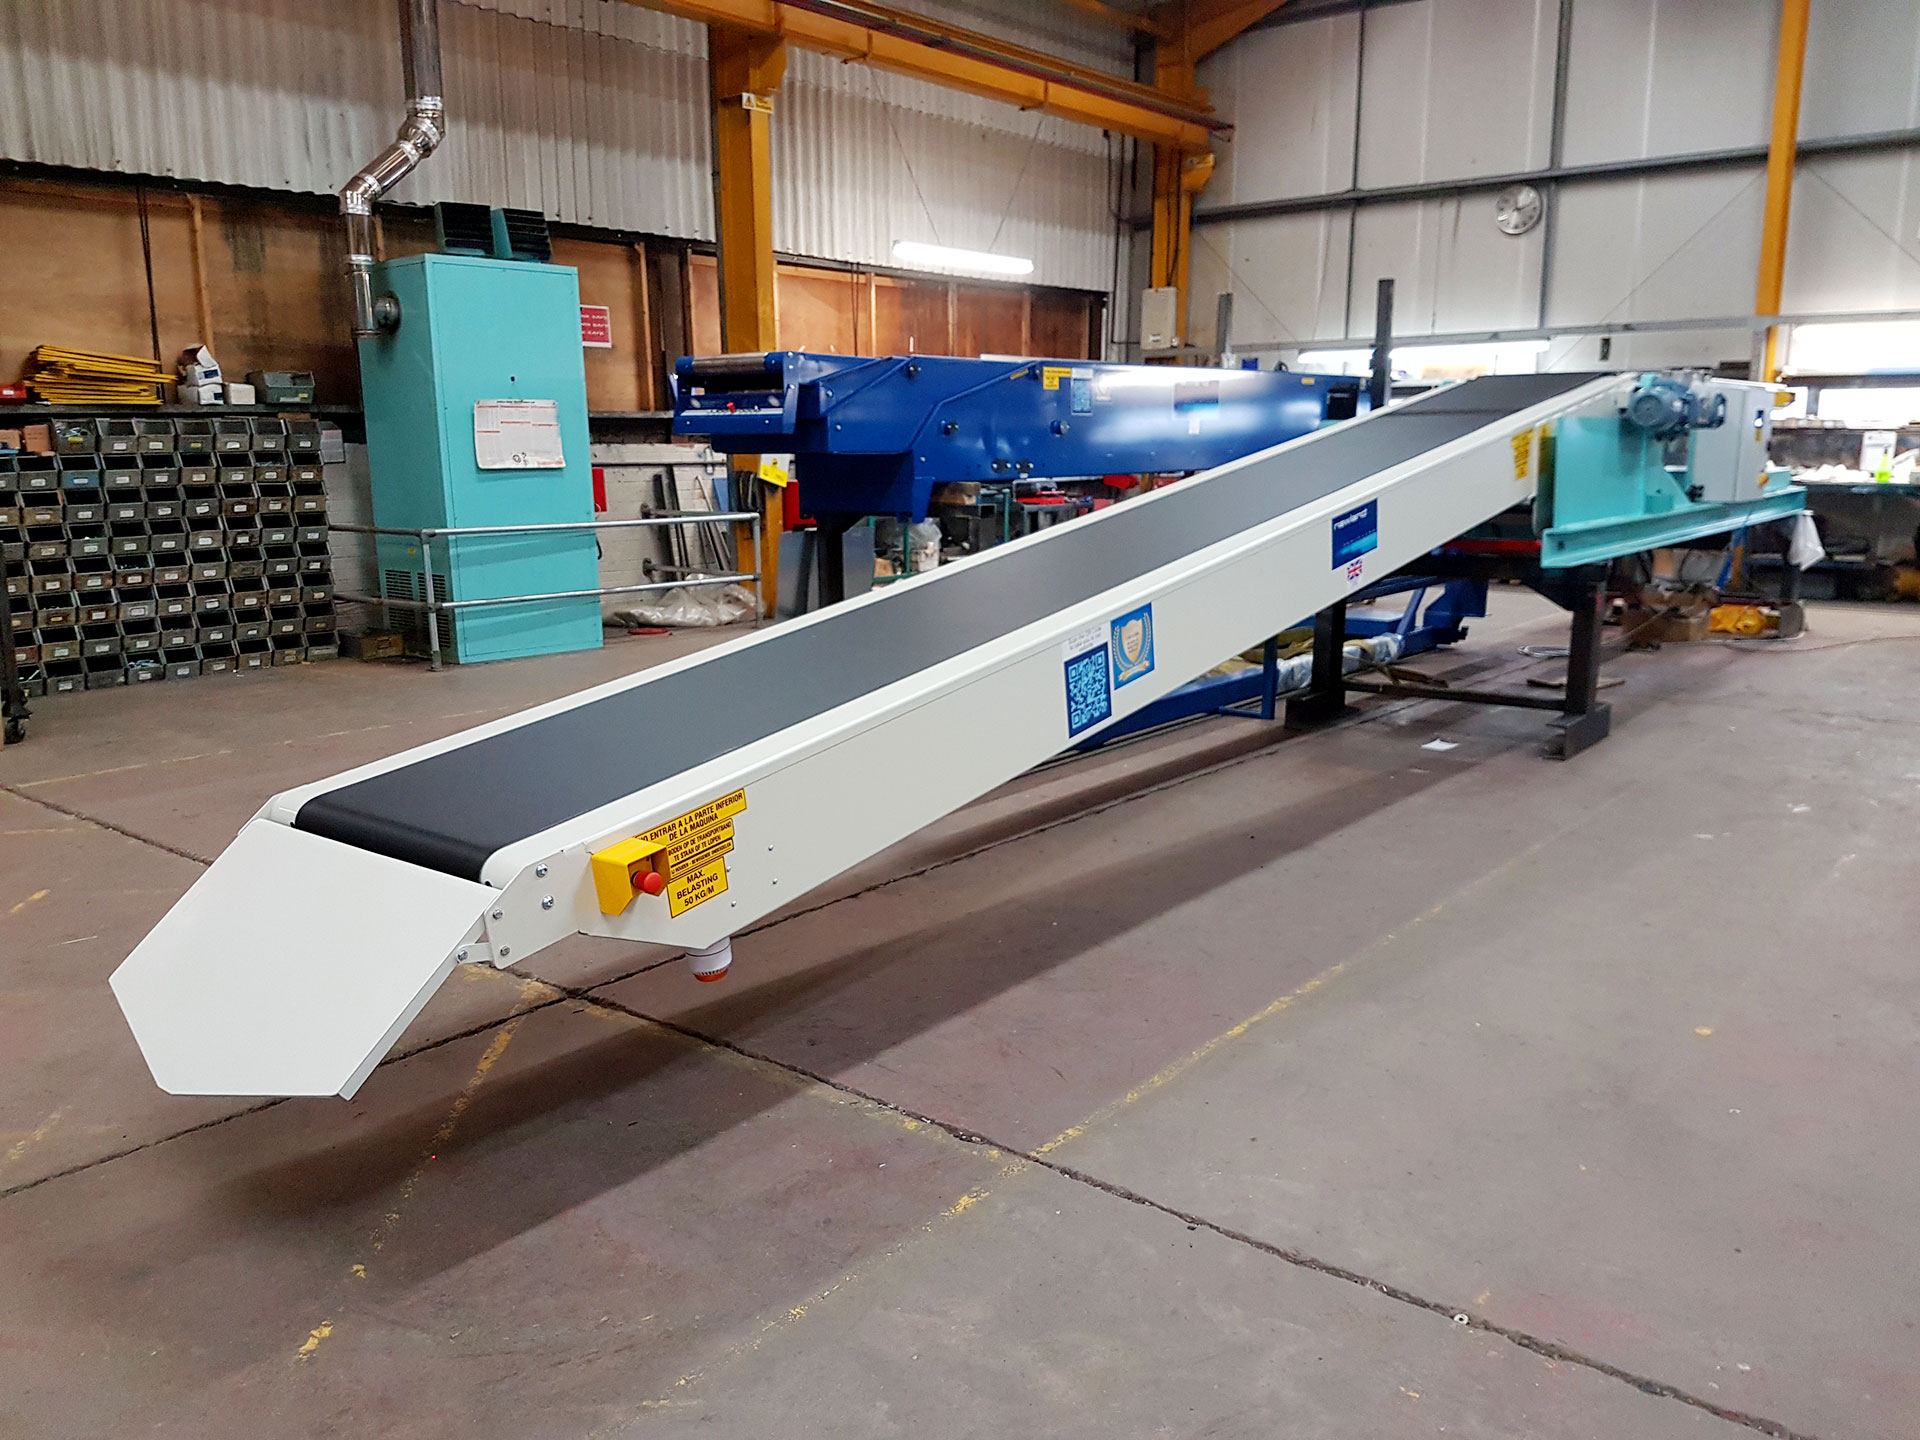 We are delighted to be sending 2 of our conveyors to a flour mill in Mexico!